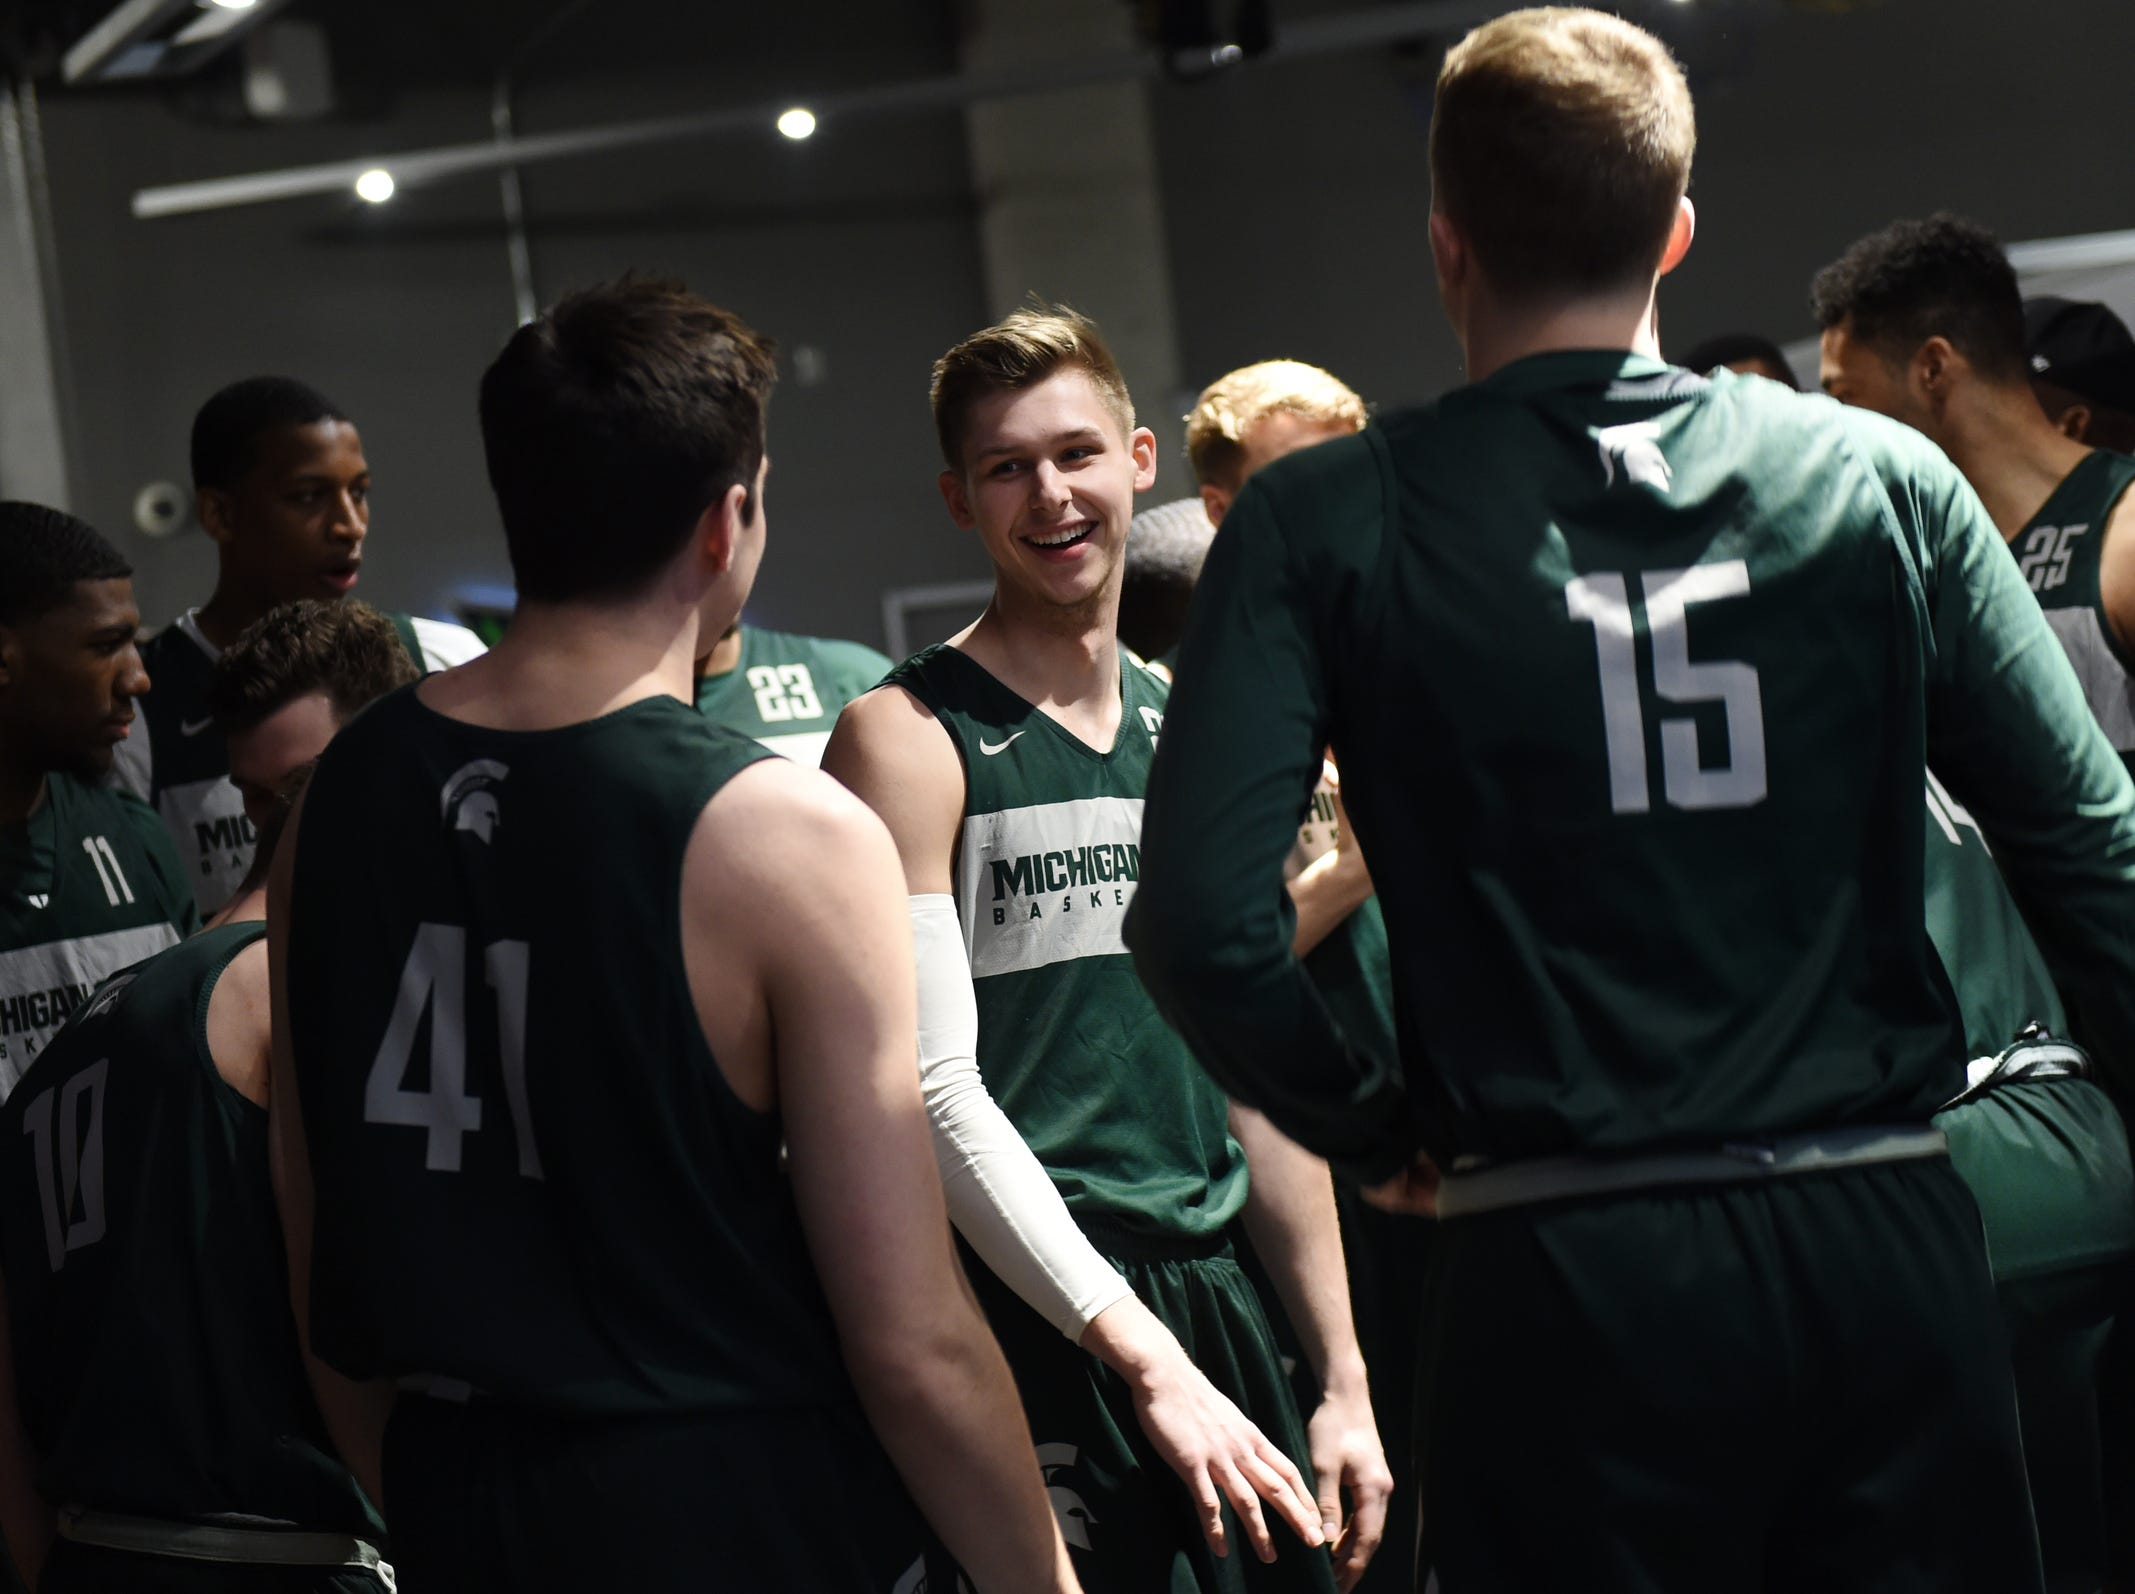 Michigan State guard Matt McQuaid (20) jokes around with teammate before they take the court for an open practice at U.S. Bank Stadium during the Final Four in Minneapolis, Minnesota on Friday, April 5, 2019.